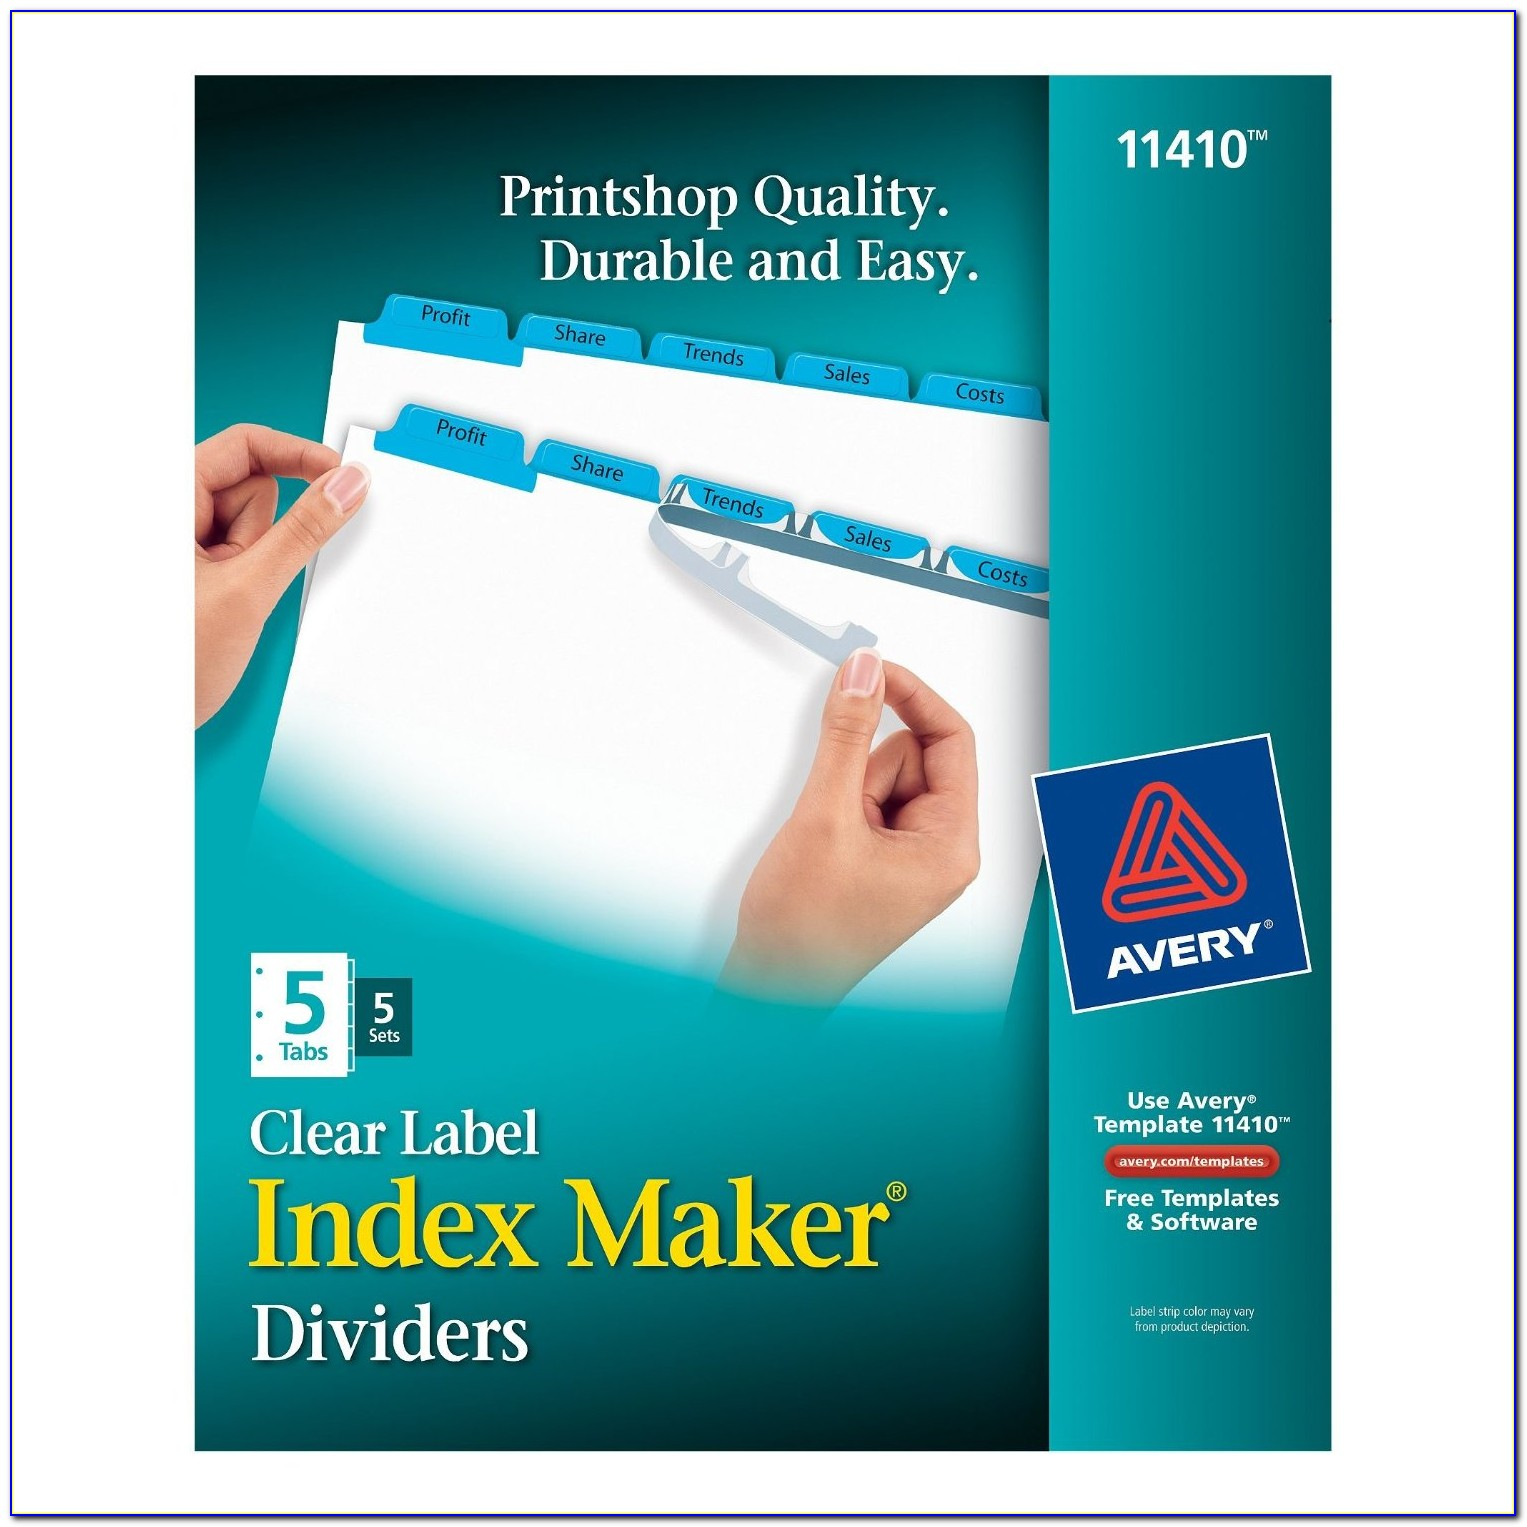 Avery Clear Label Index Maker Dividers 5 Tab Template